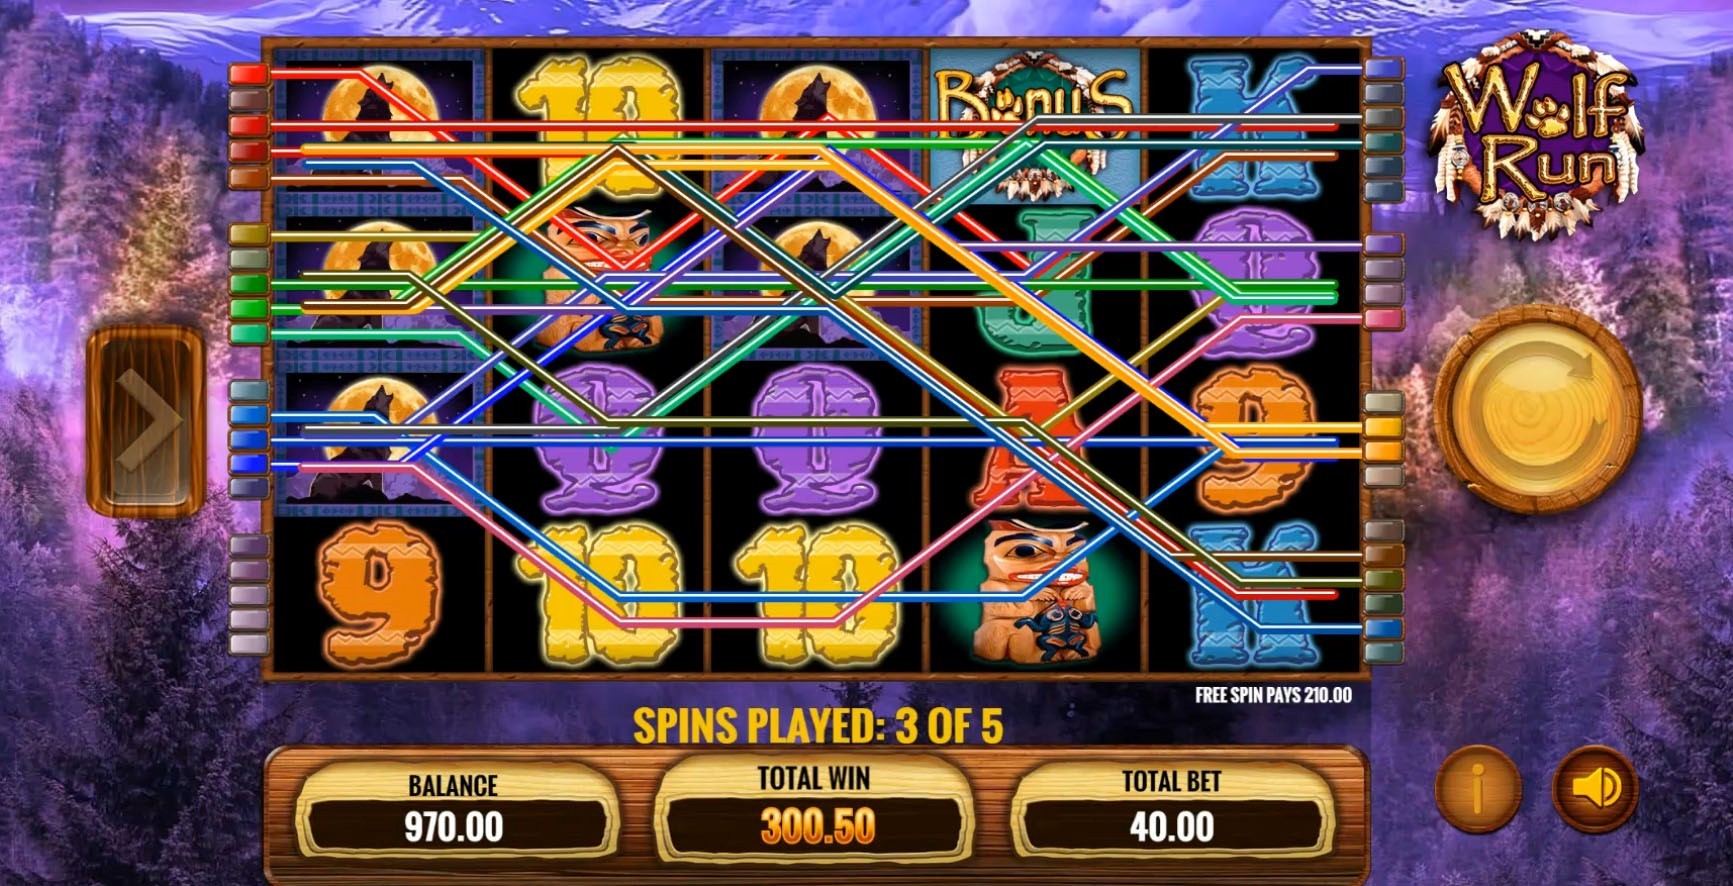 A Free Spins bonus round in progress on the mobile version of IGT's Wolf Run slot machine